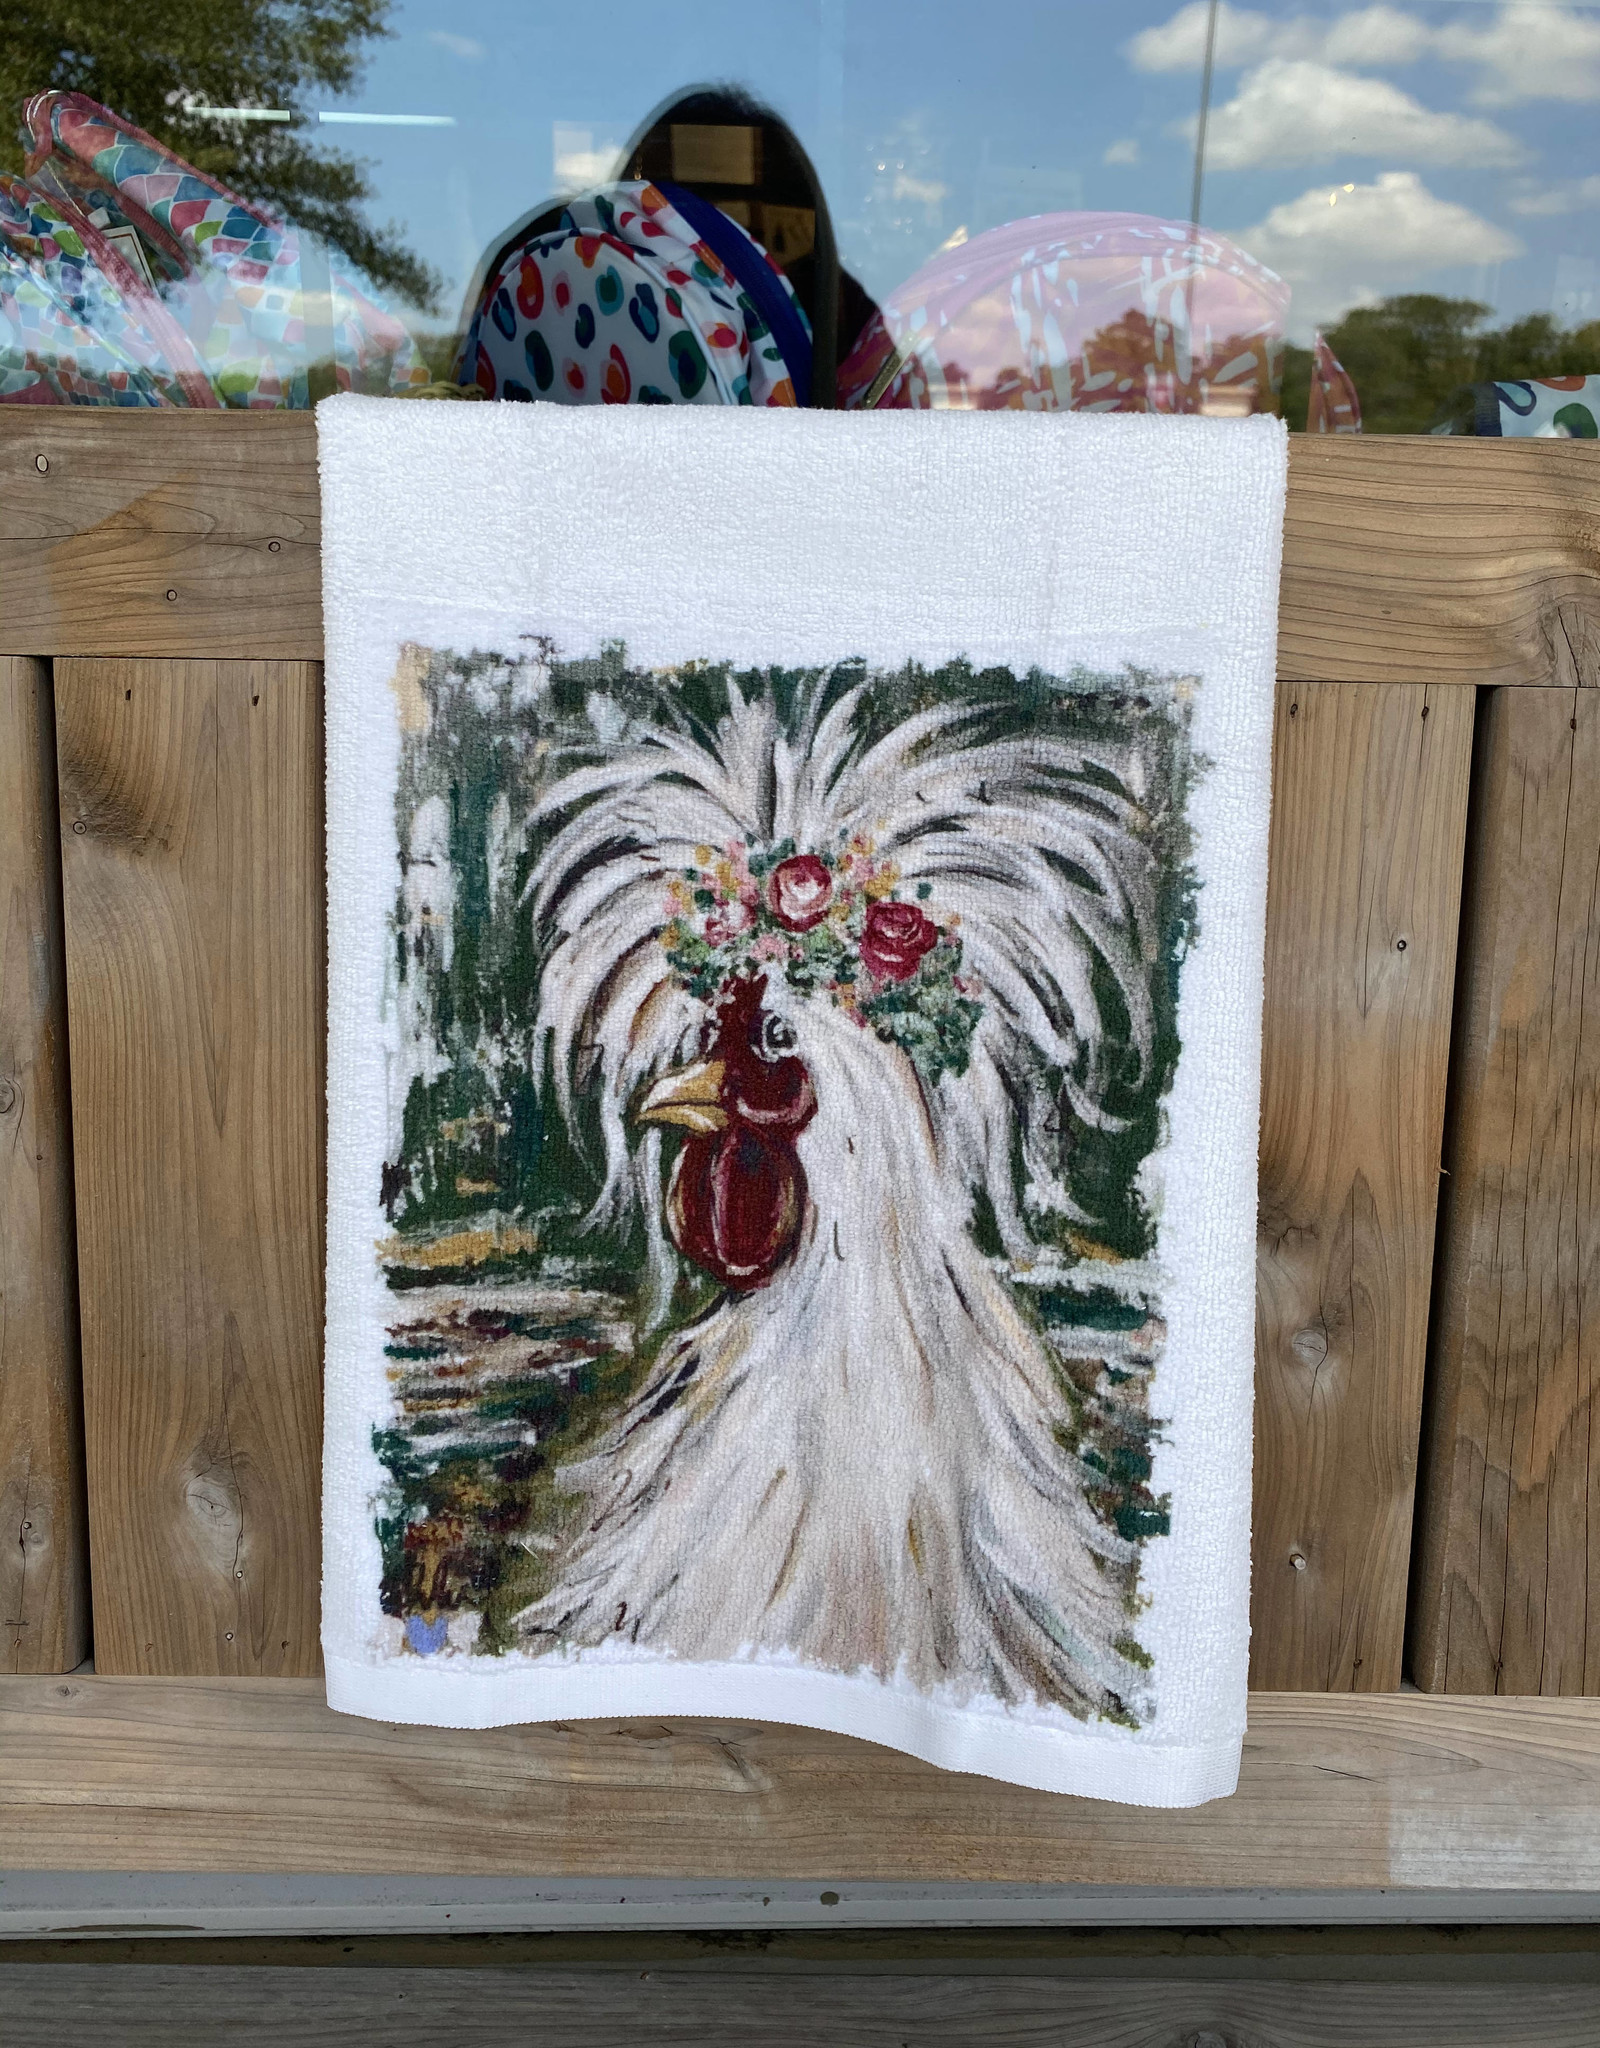 Chicken Flower Crown Microfiber Towel